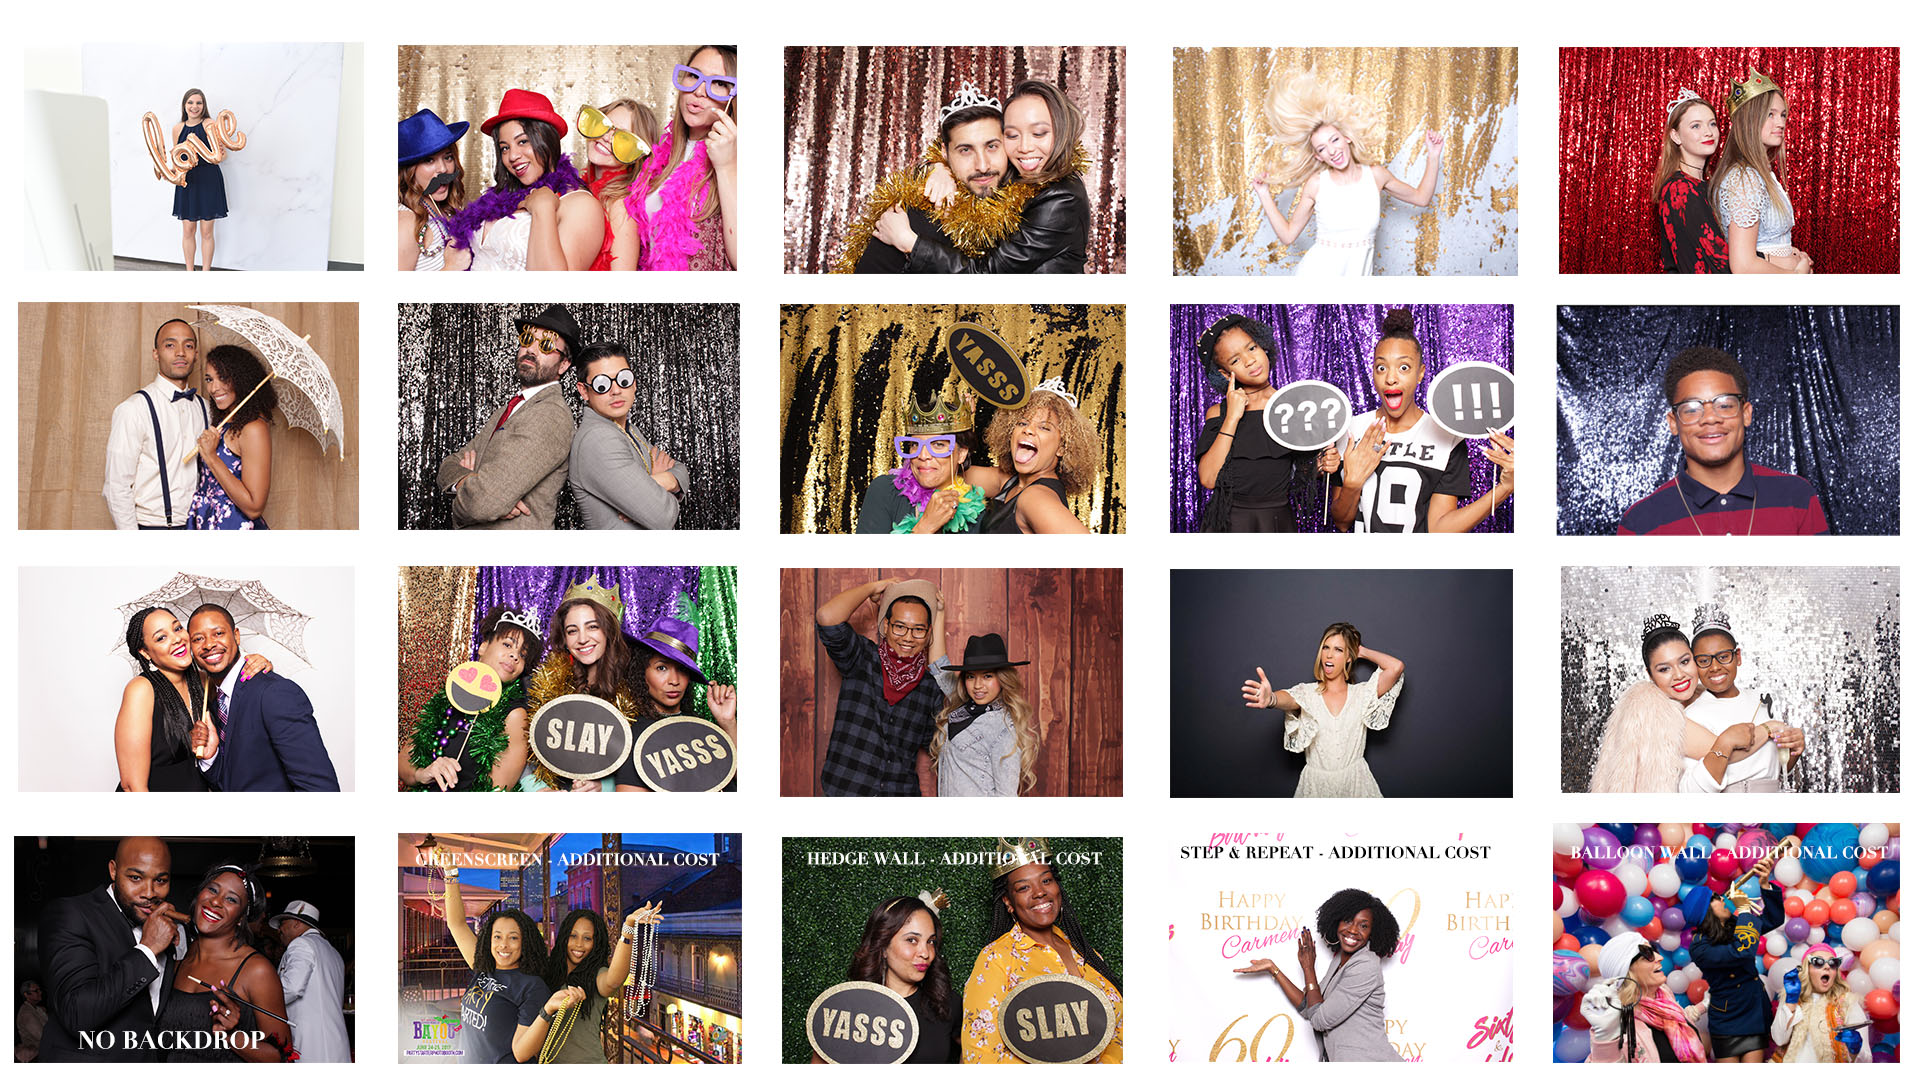 PARTY STARTER PHOTO BOOTH BACKDROPS